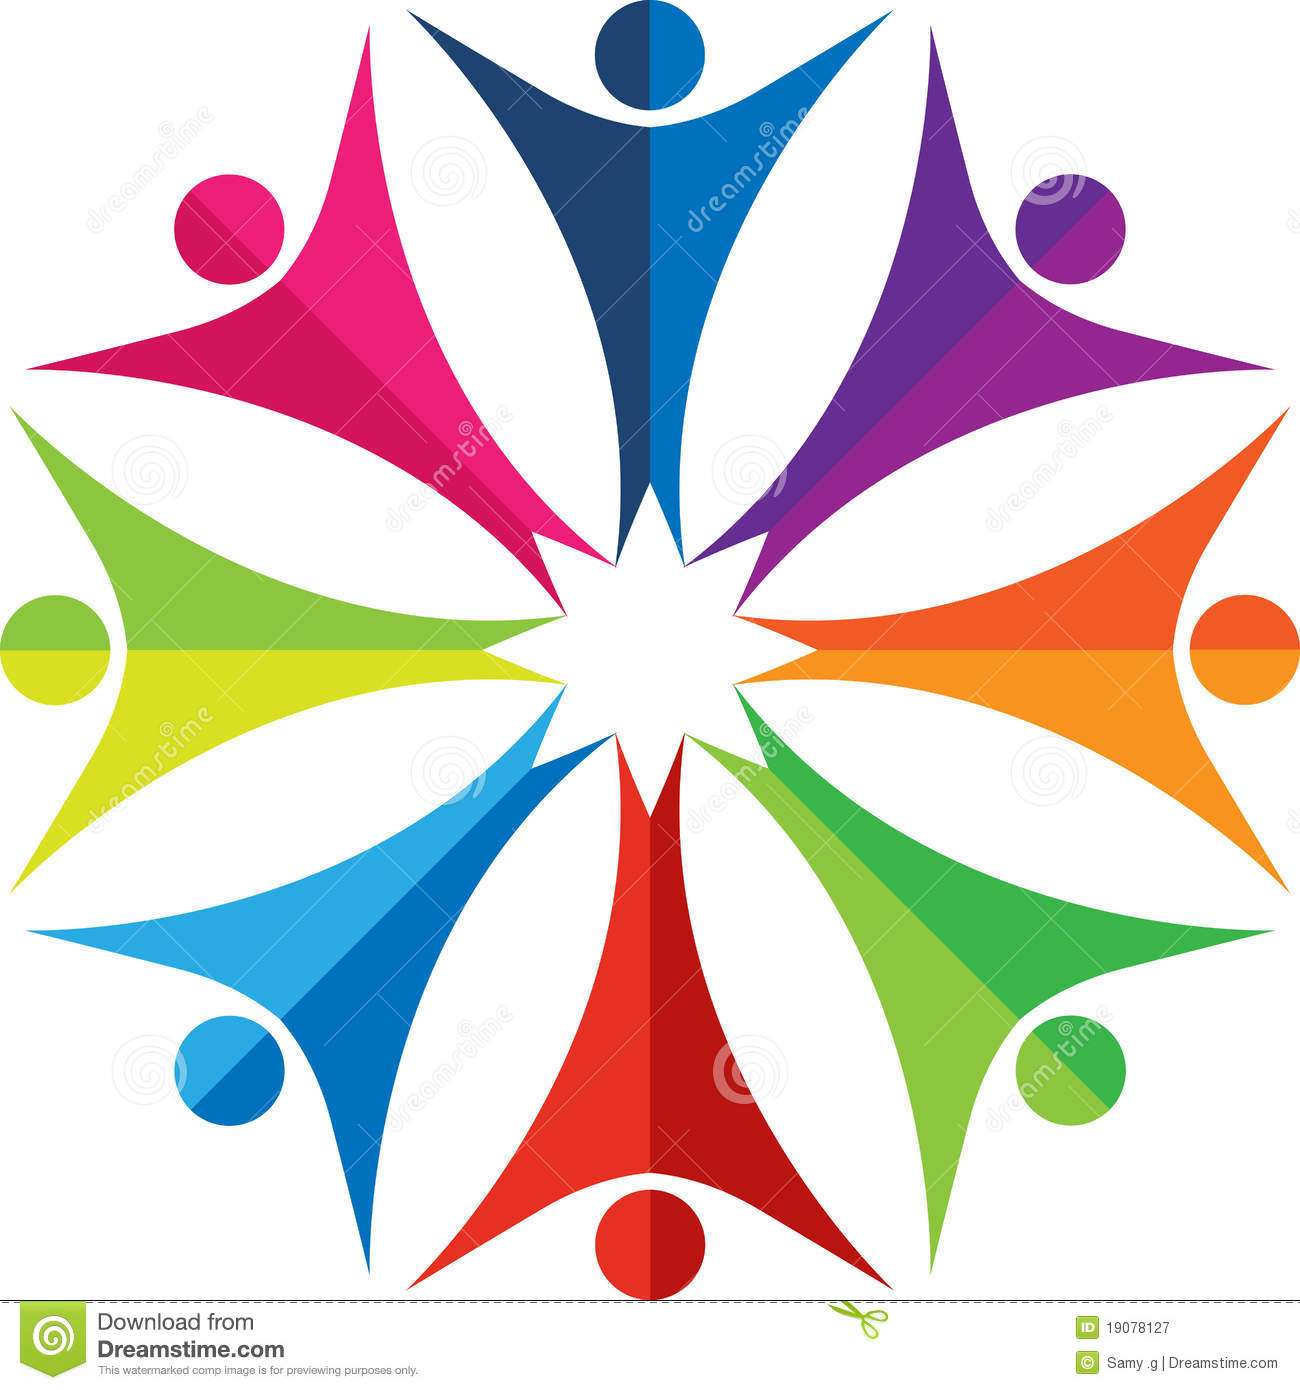 Colorful People Logo Royalty Free Stock Photography - Image: 19078127